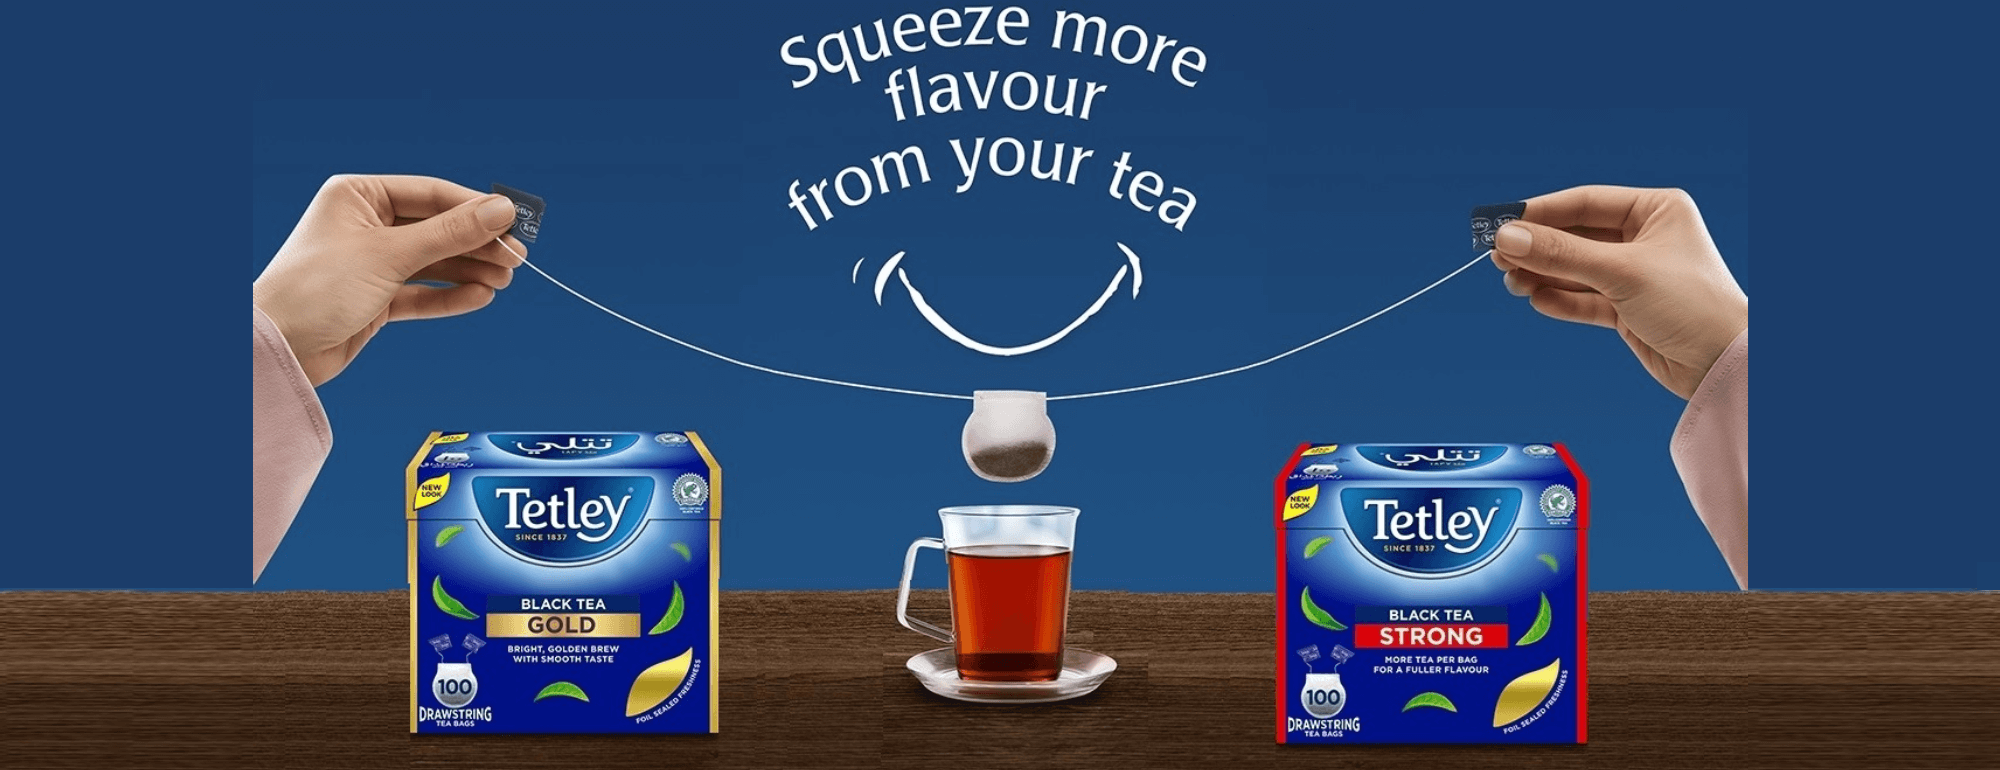 Squeeze full flavour from your tea